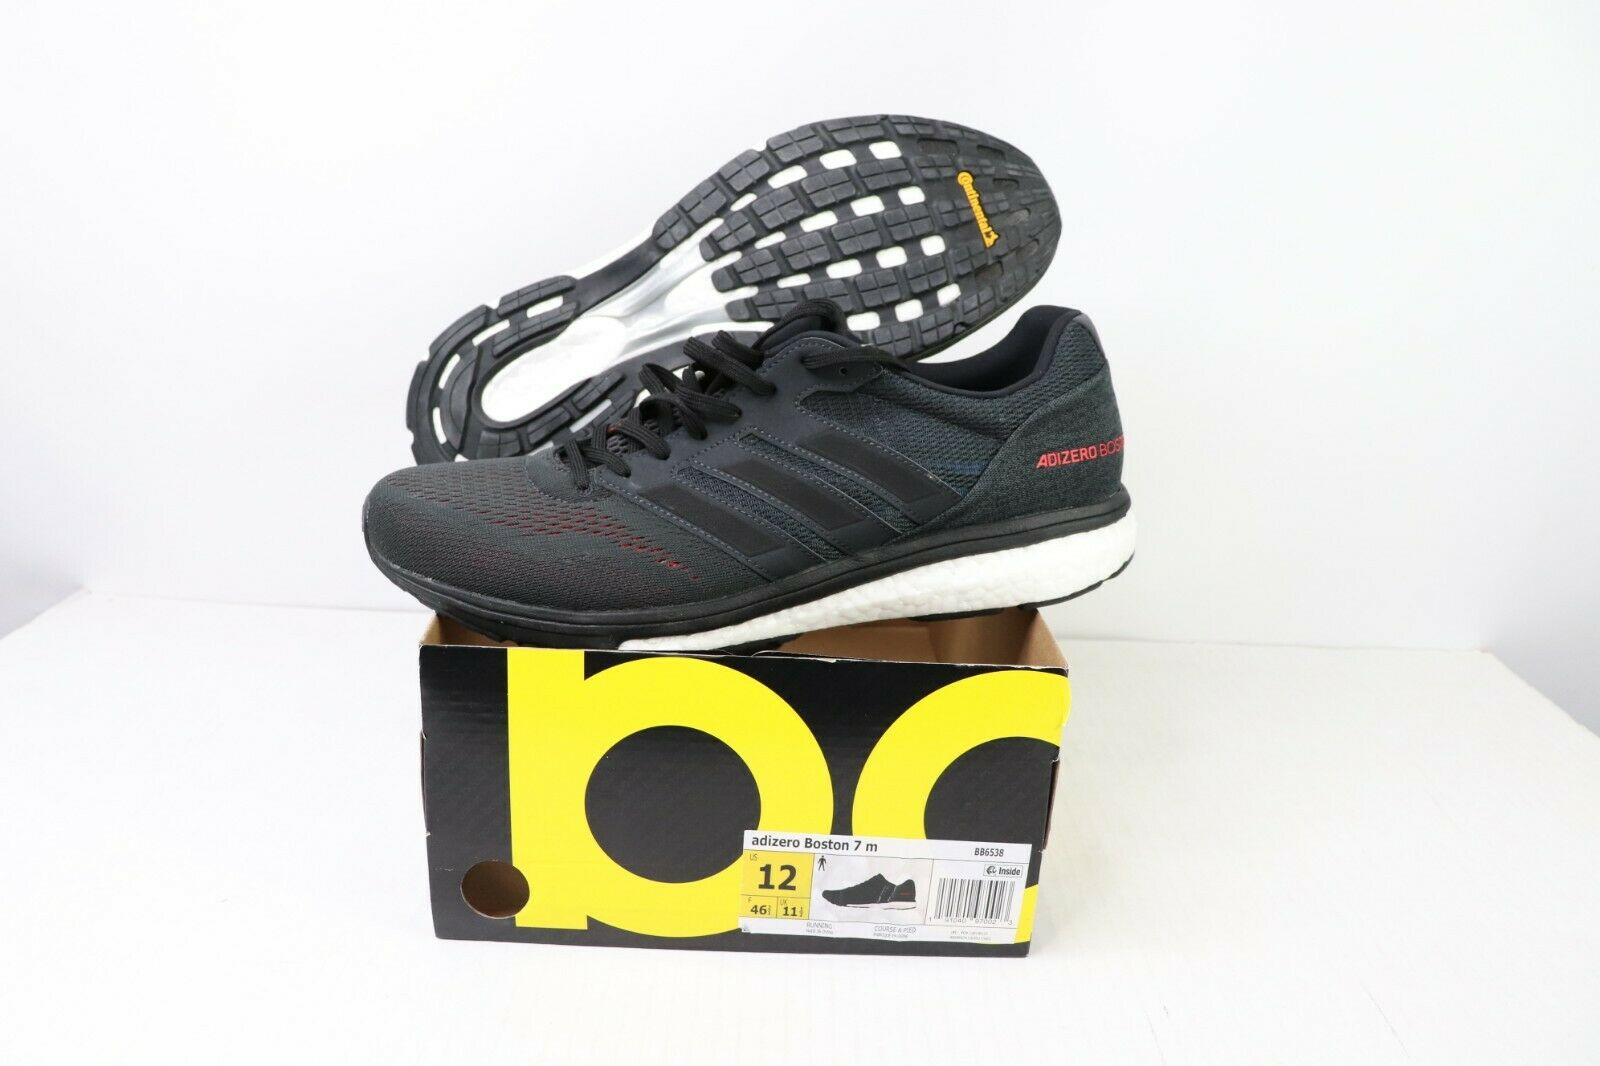 ac9549ff4e33f New Adidas Boost Mens Size 12 Boston 7 Lightweight Running Racing Flats  shoes